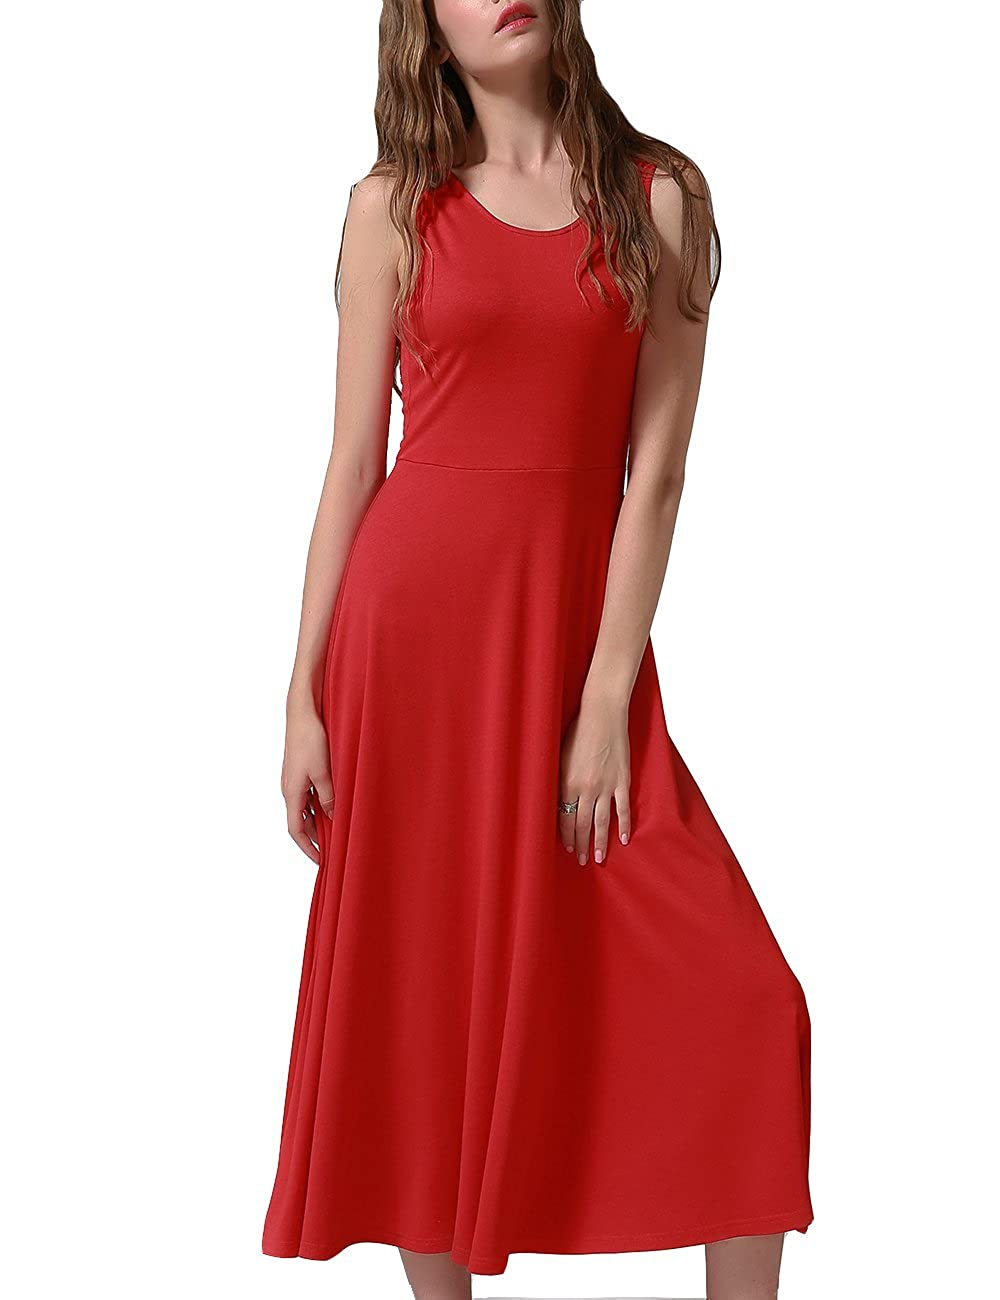 398485342f A Line Skater Dress ,Gifts for Women.(DO NOT WASH THE RED DRESS WITH LIGHT  COLORED CLOTHES!!!) Machine washable, iron with low temperature if necessary